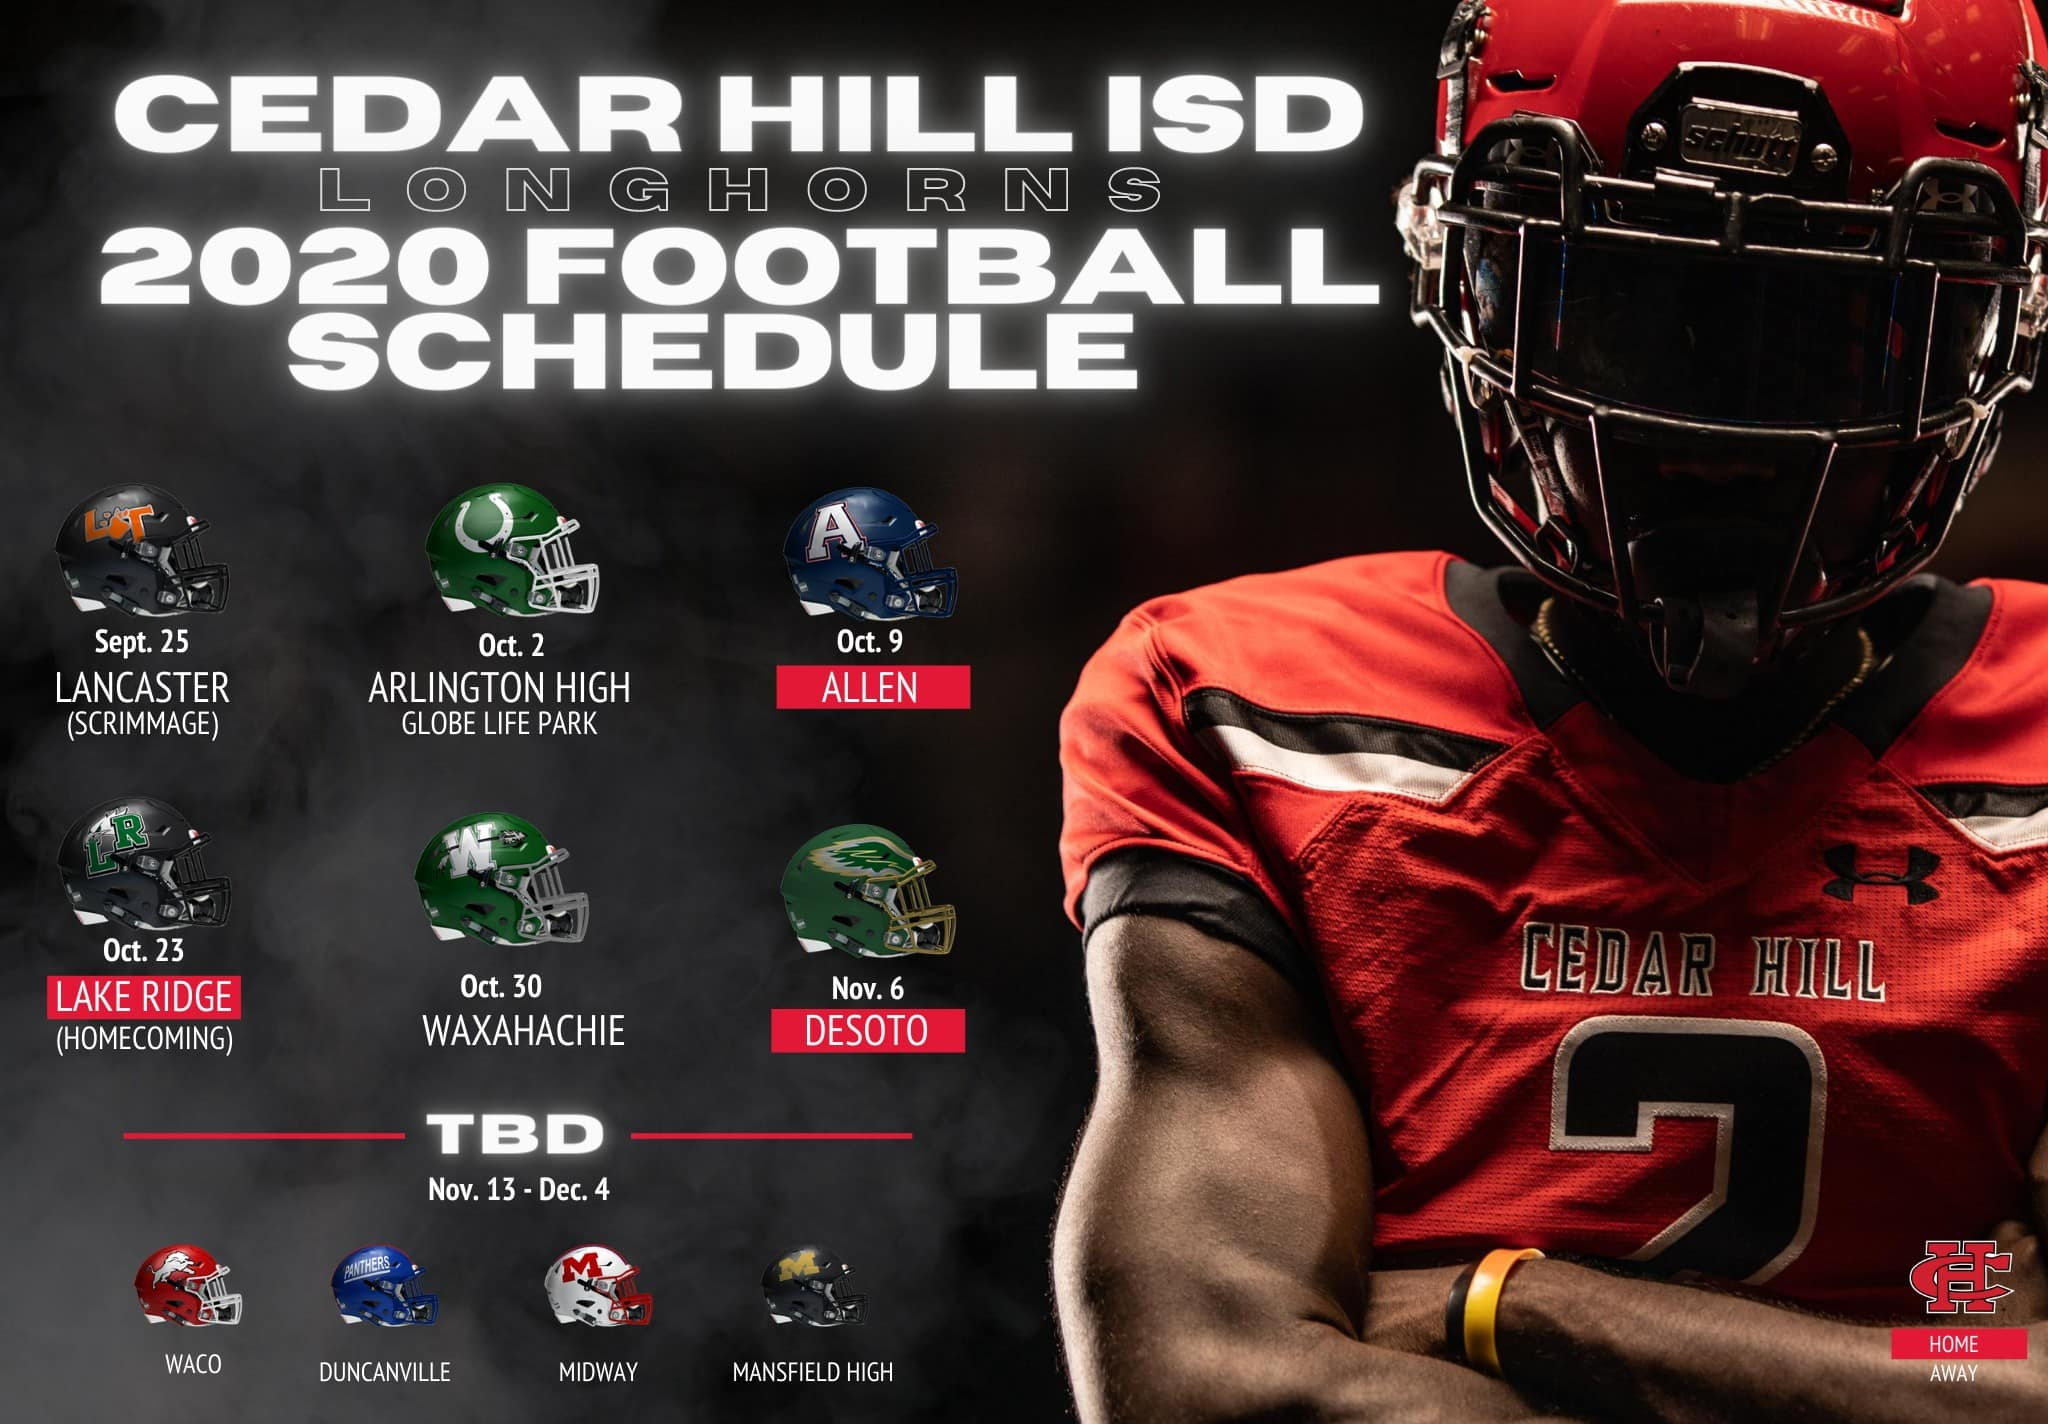 CHISD 2020 football schedule